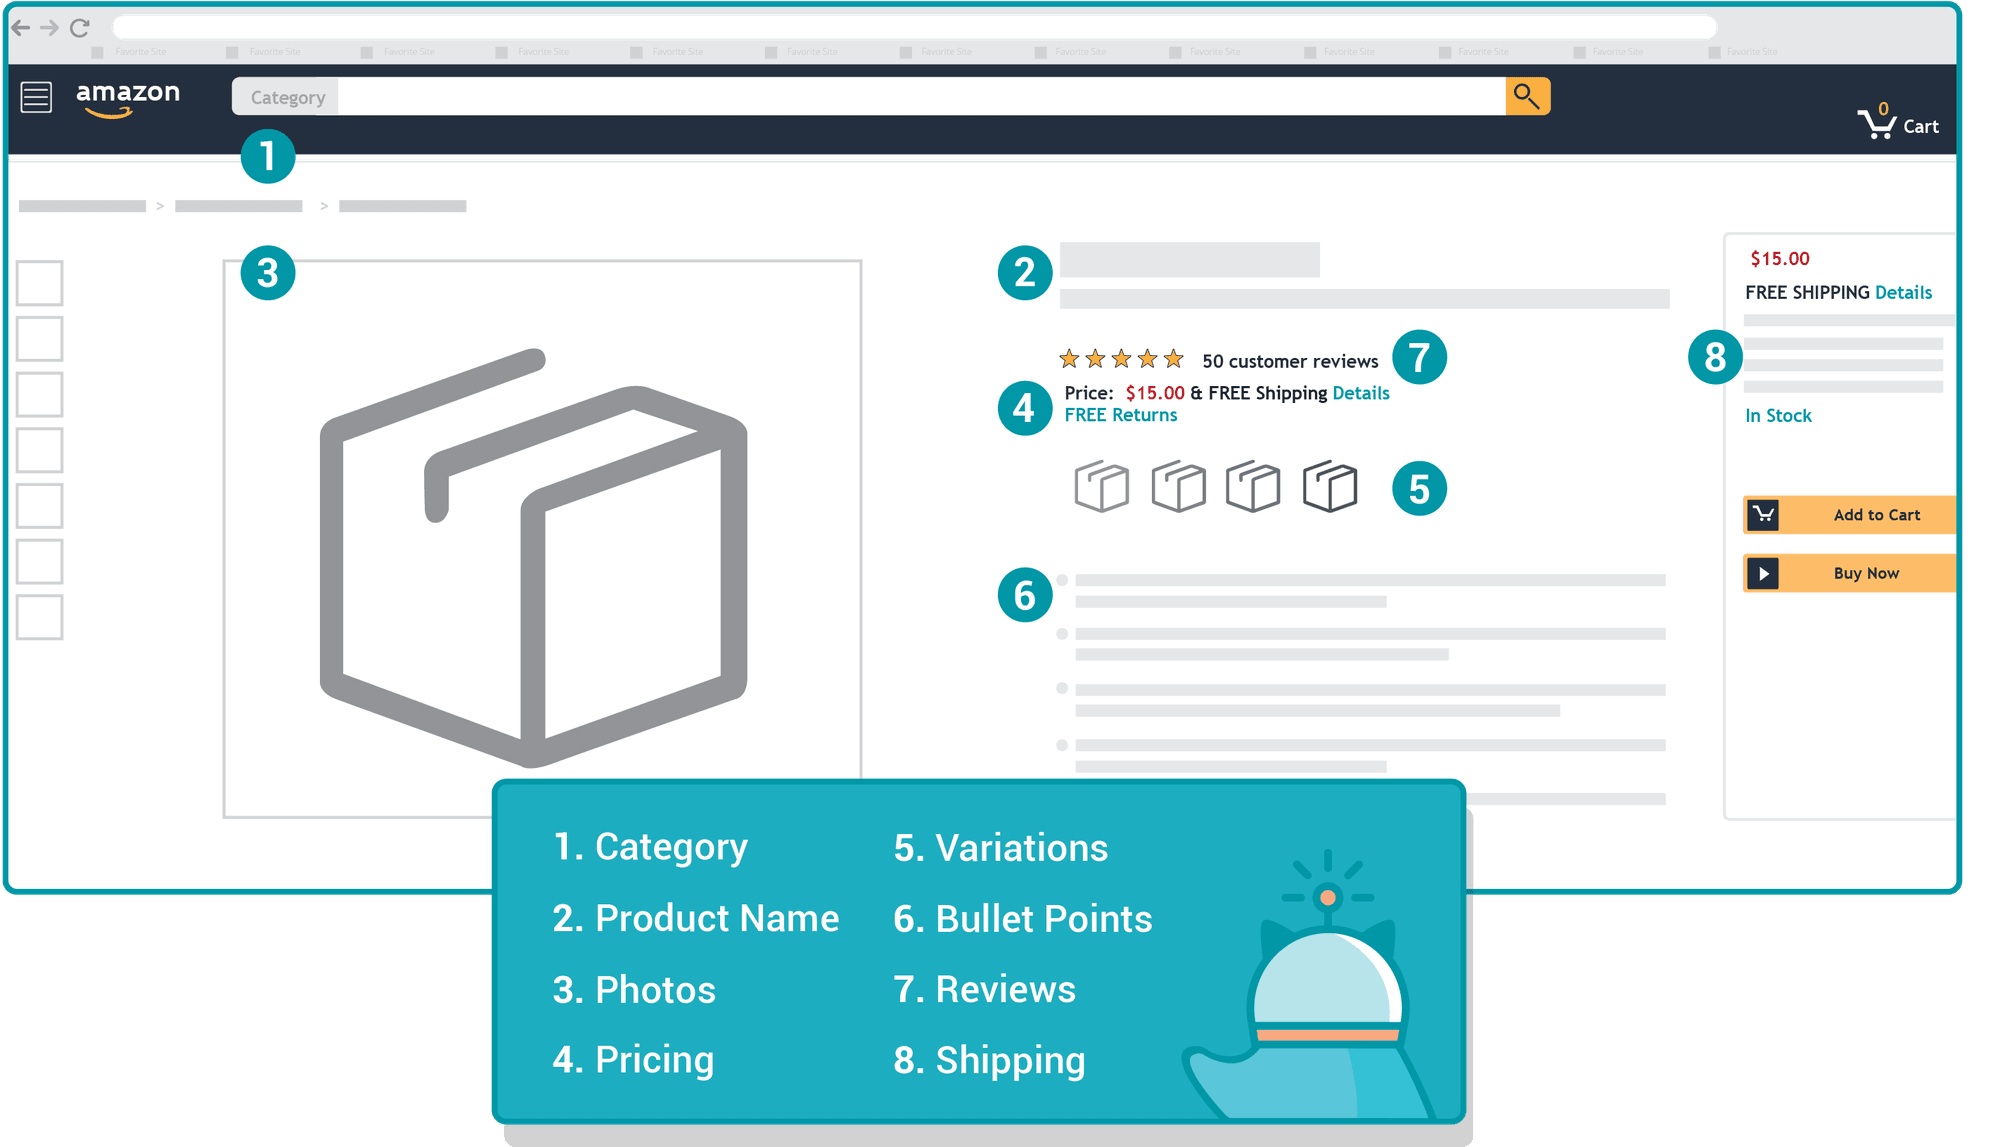 eight core traits of an amazon listing